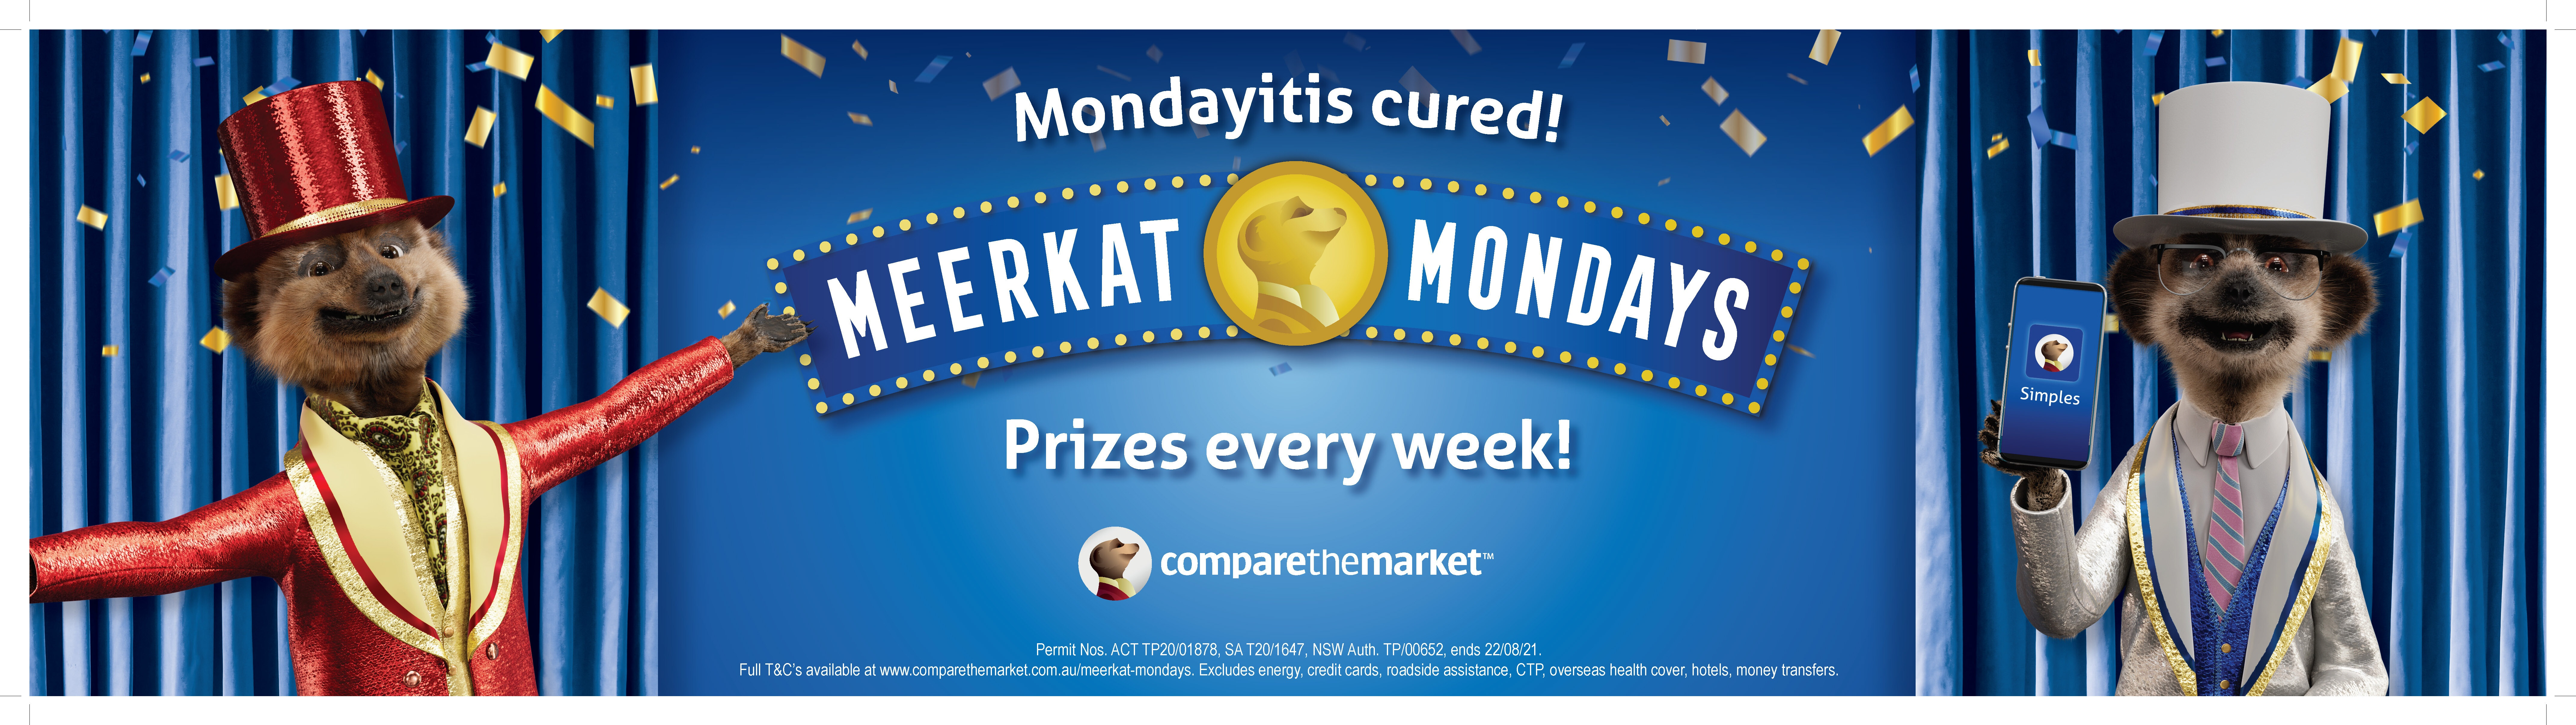 Compare the Market turns Monday into Fundays with new campaign via VCCP Sydney